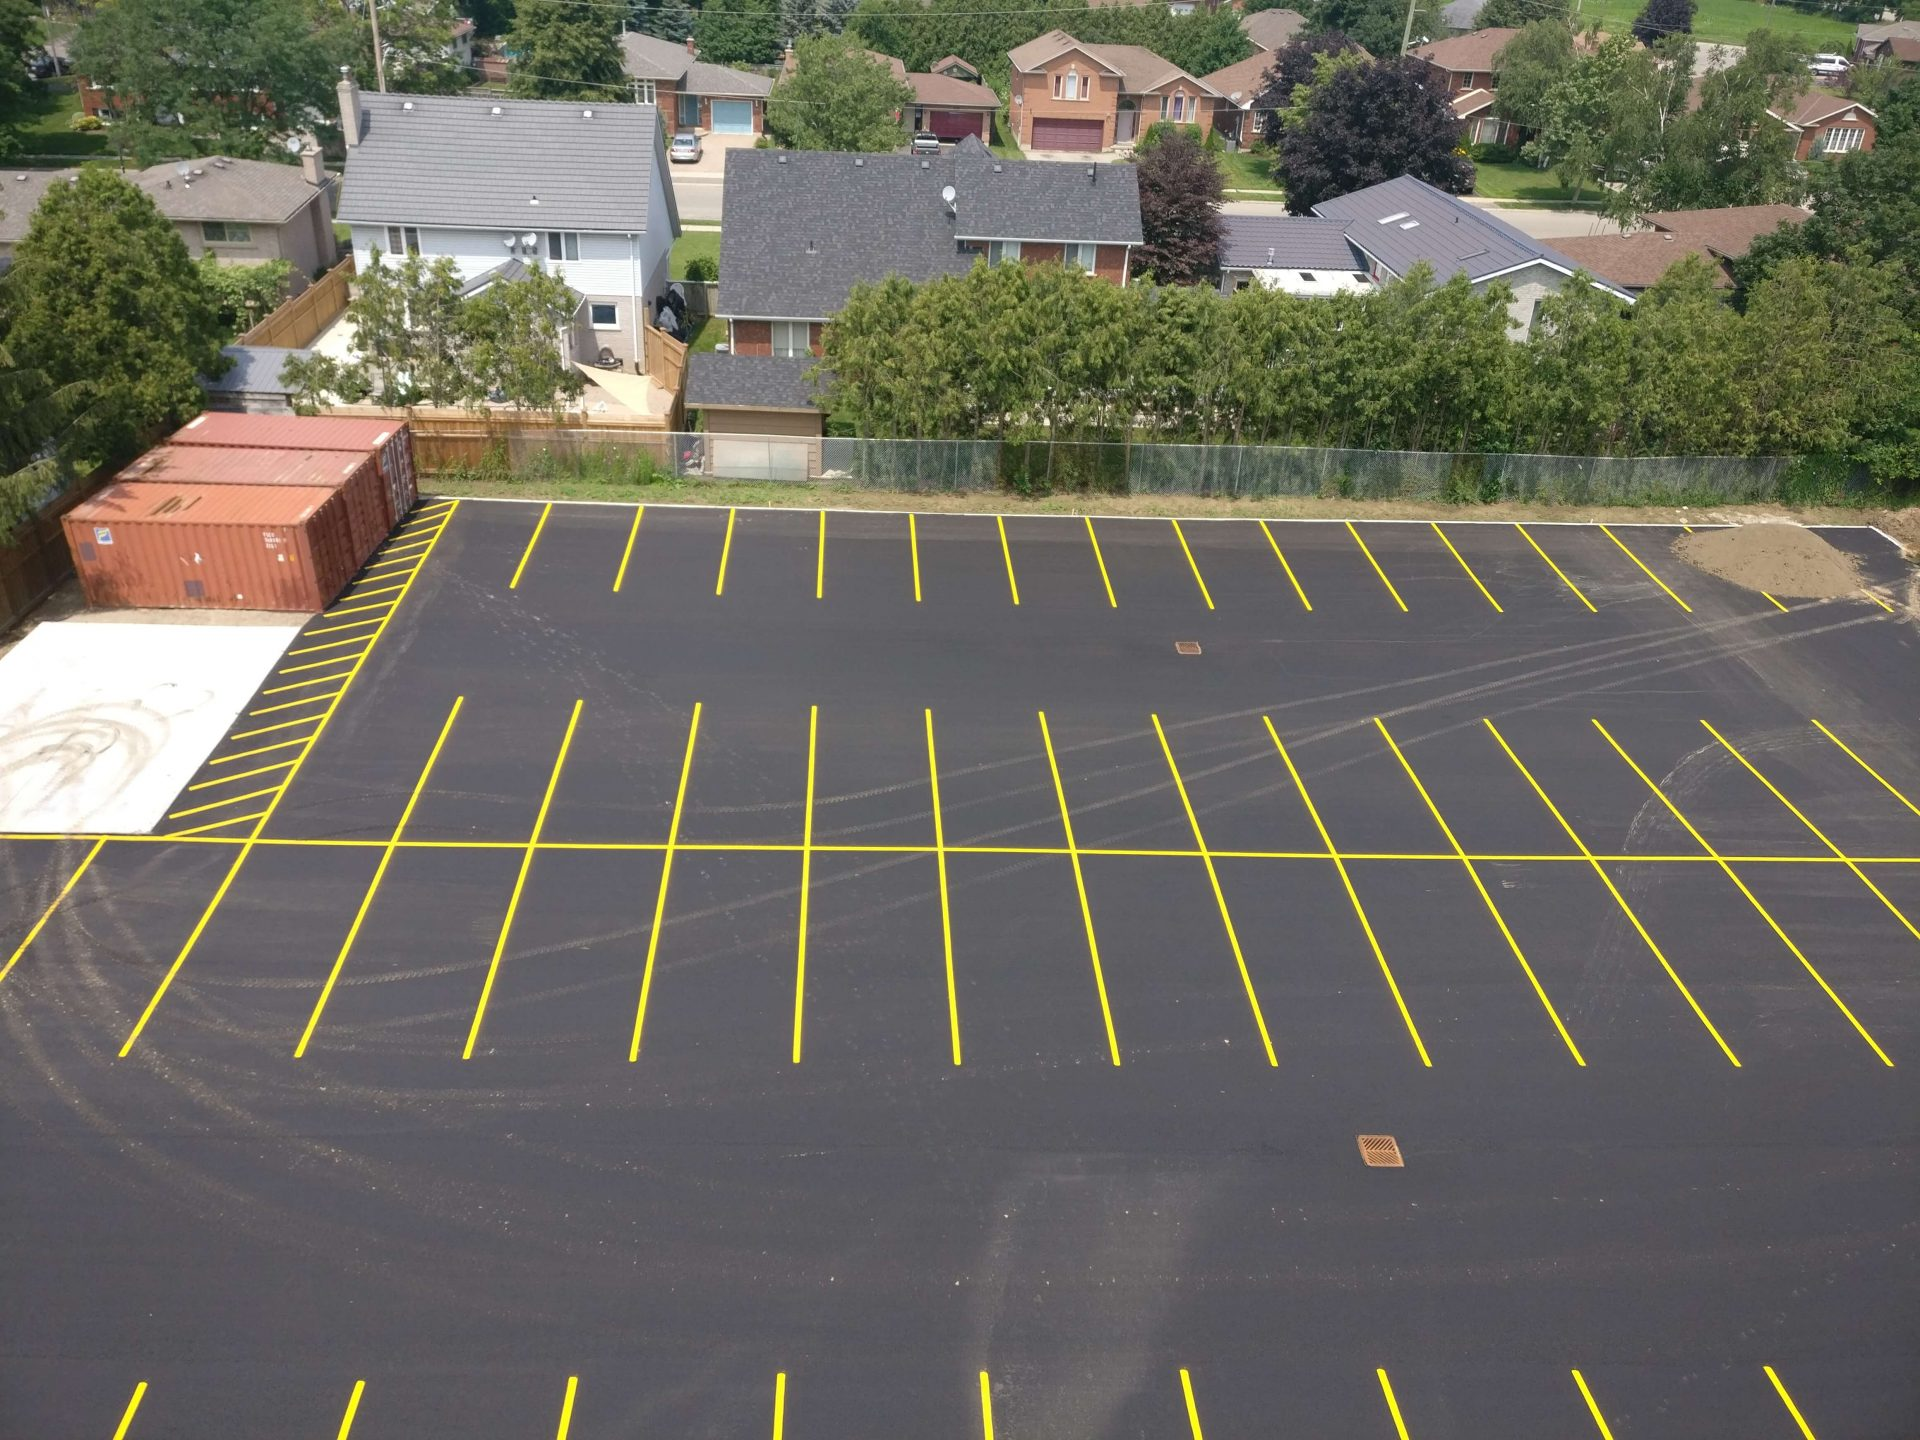 Parking lot completion by Paris Construction